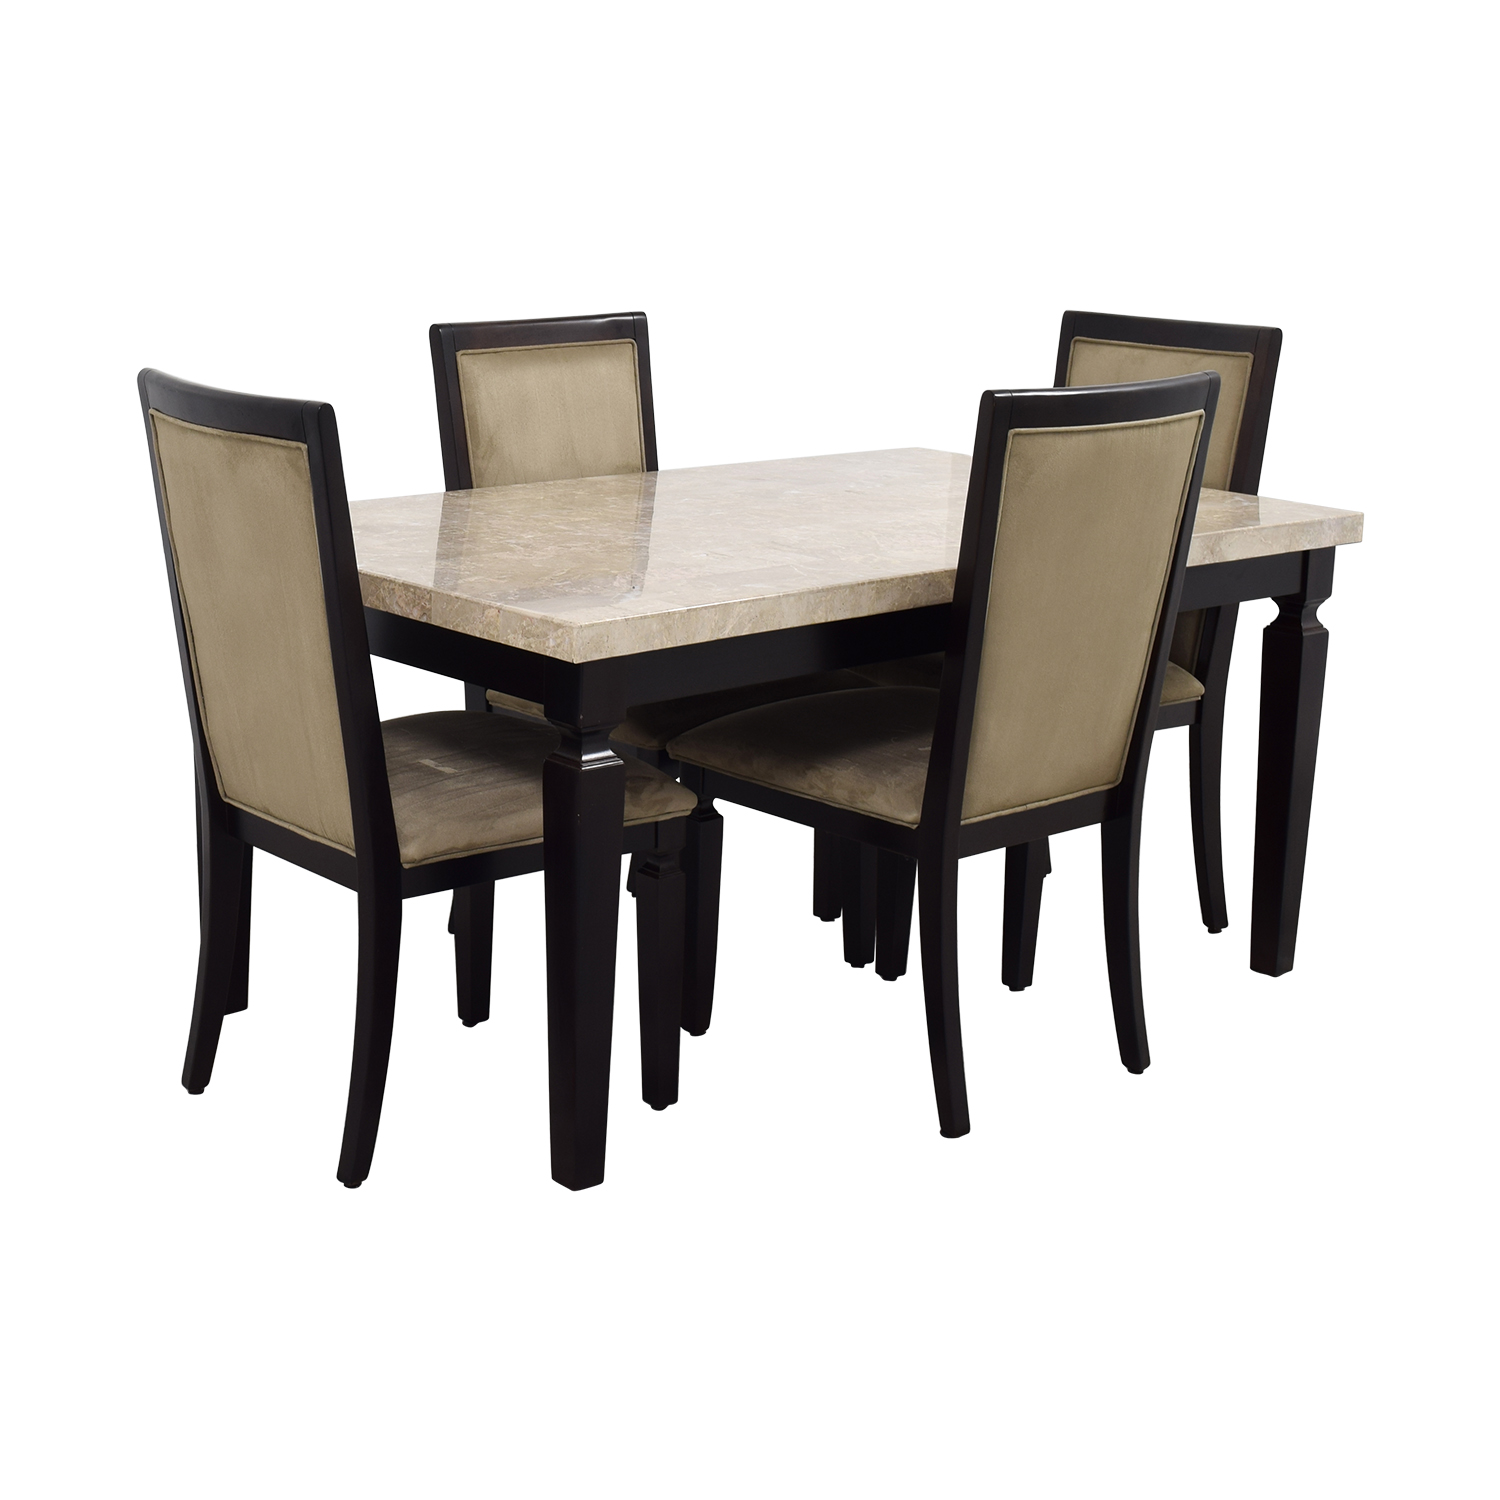 50 Off Raymour Flanigan Raymour Flanigan Rogue Marble Dining Set Tables